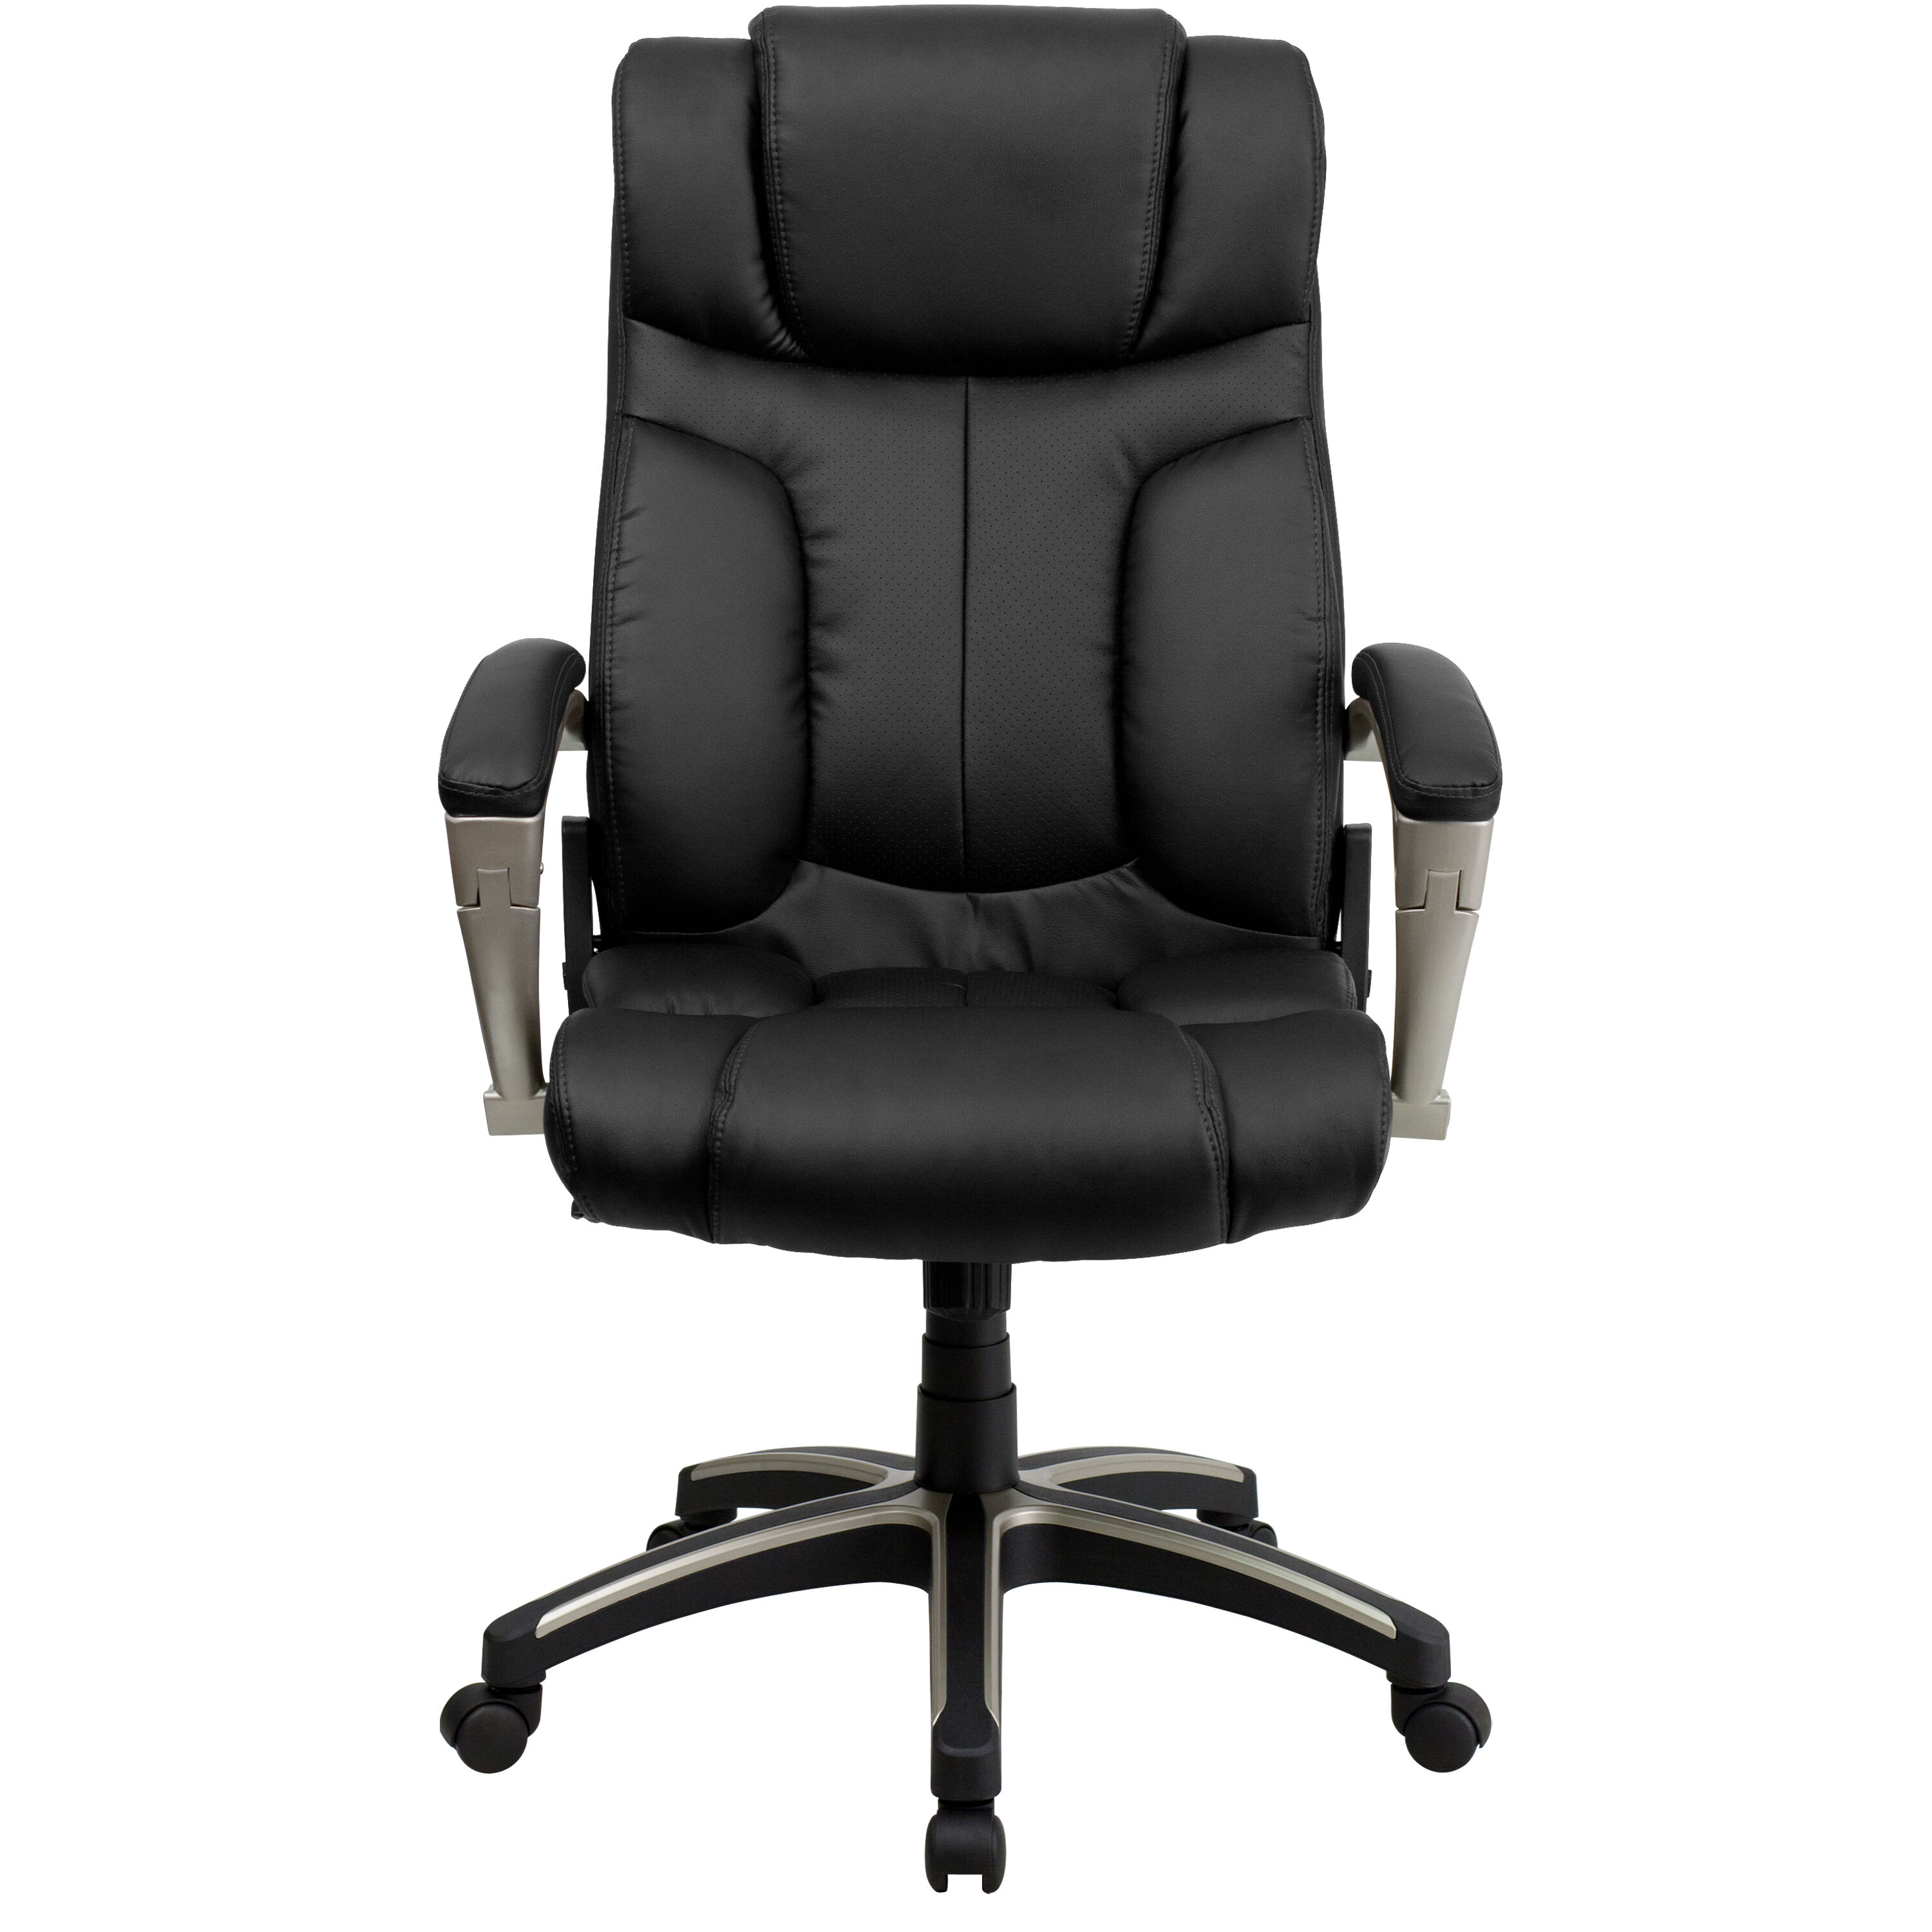 banquet chairs with arms ashley furniture table and black high back leather chair bt 9875h gg bizchair